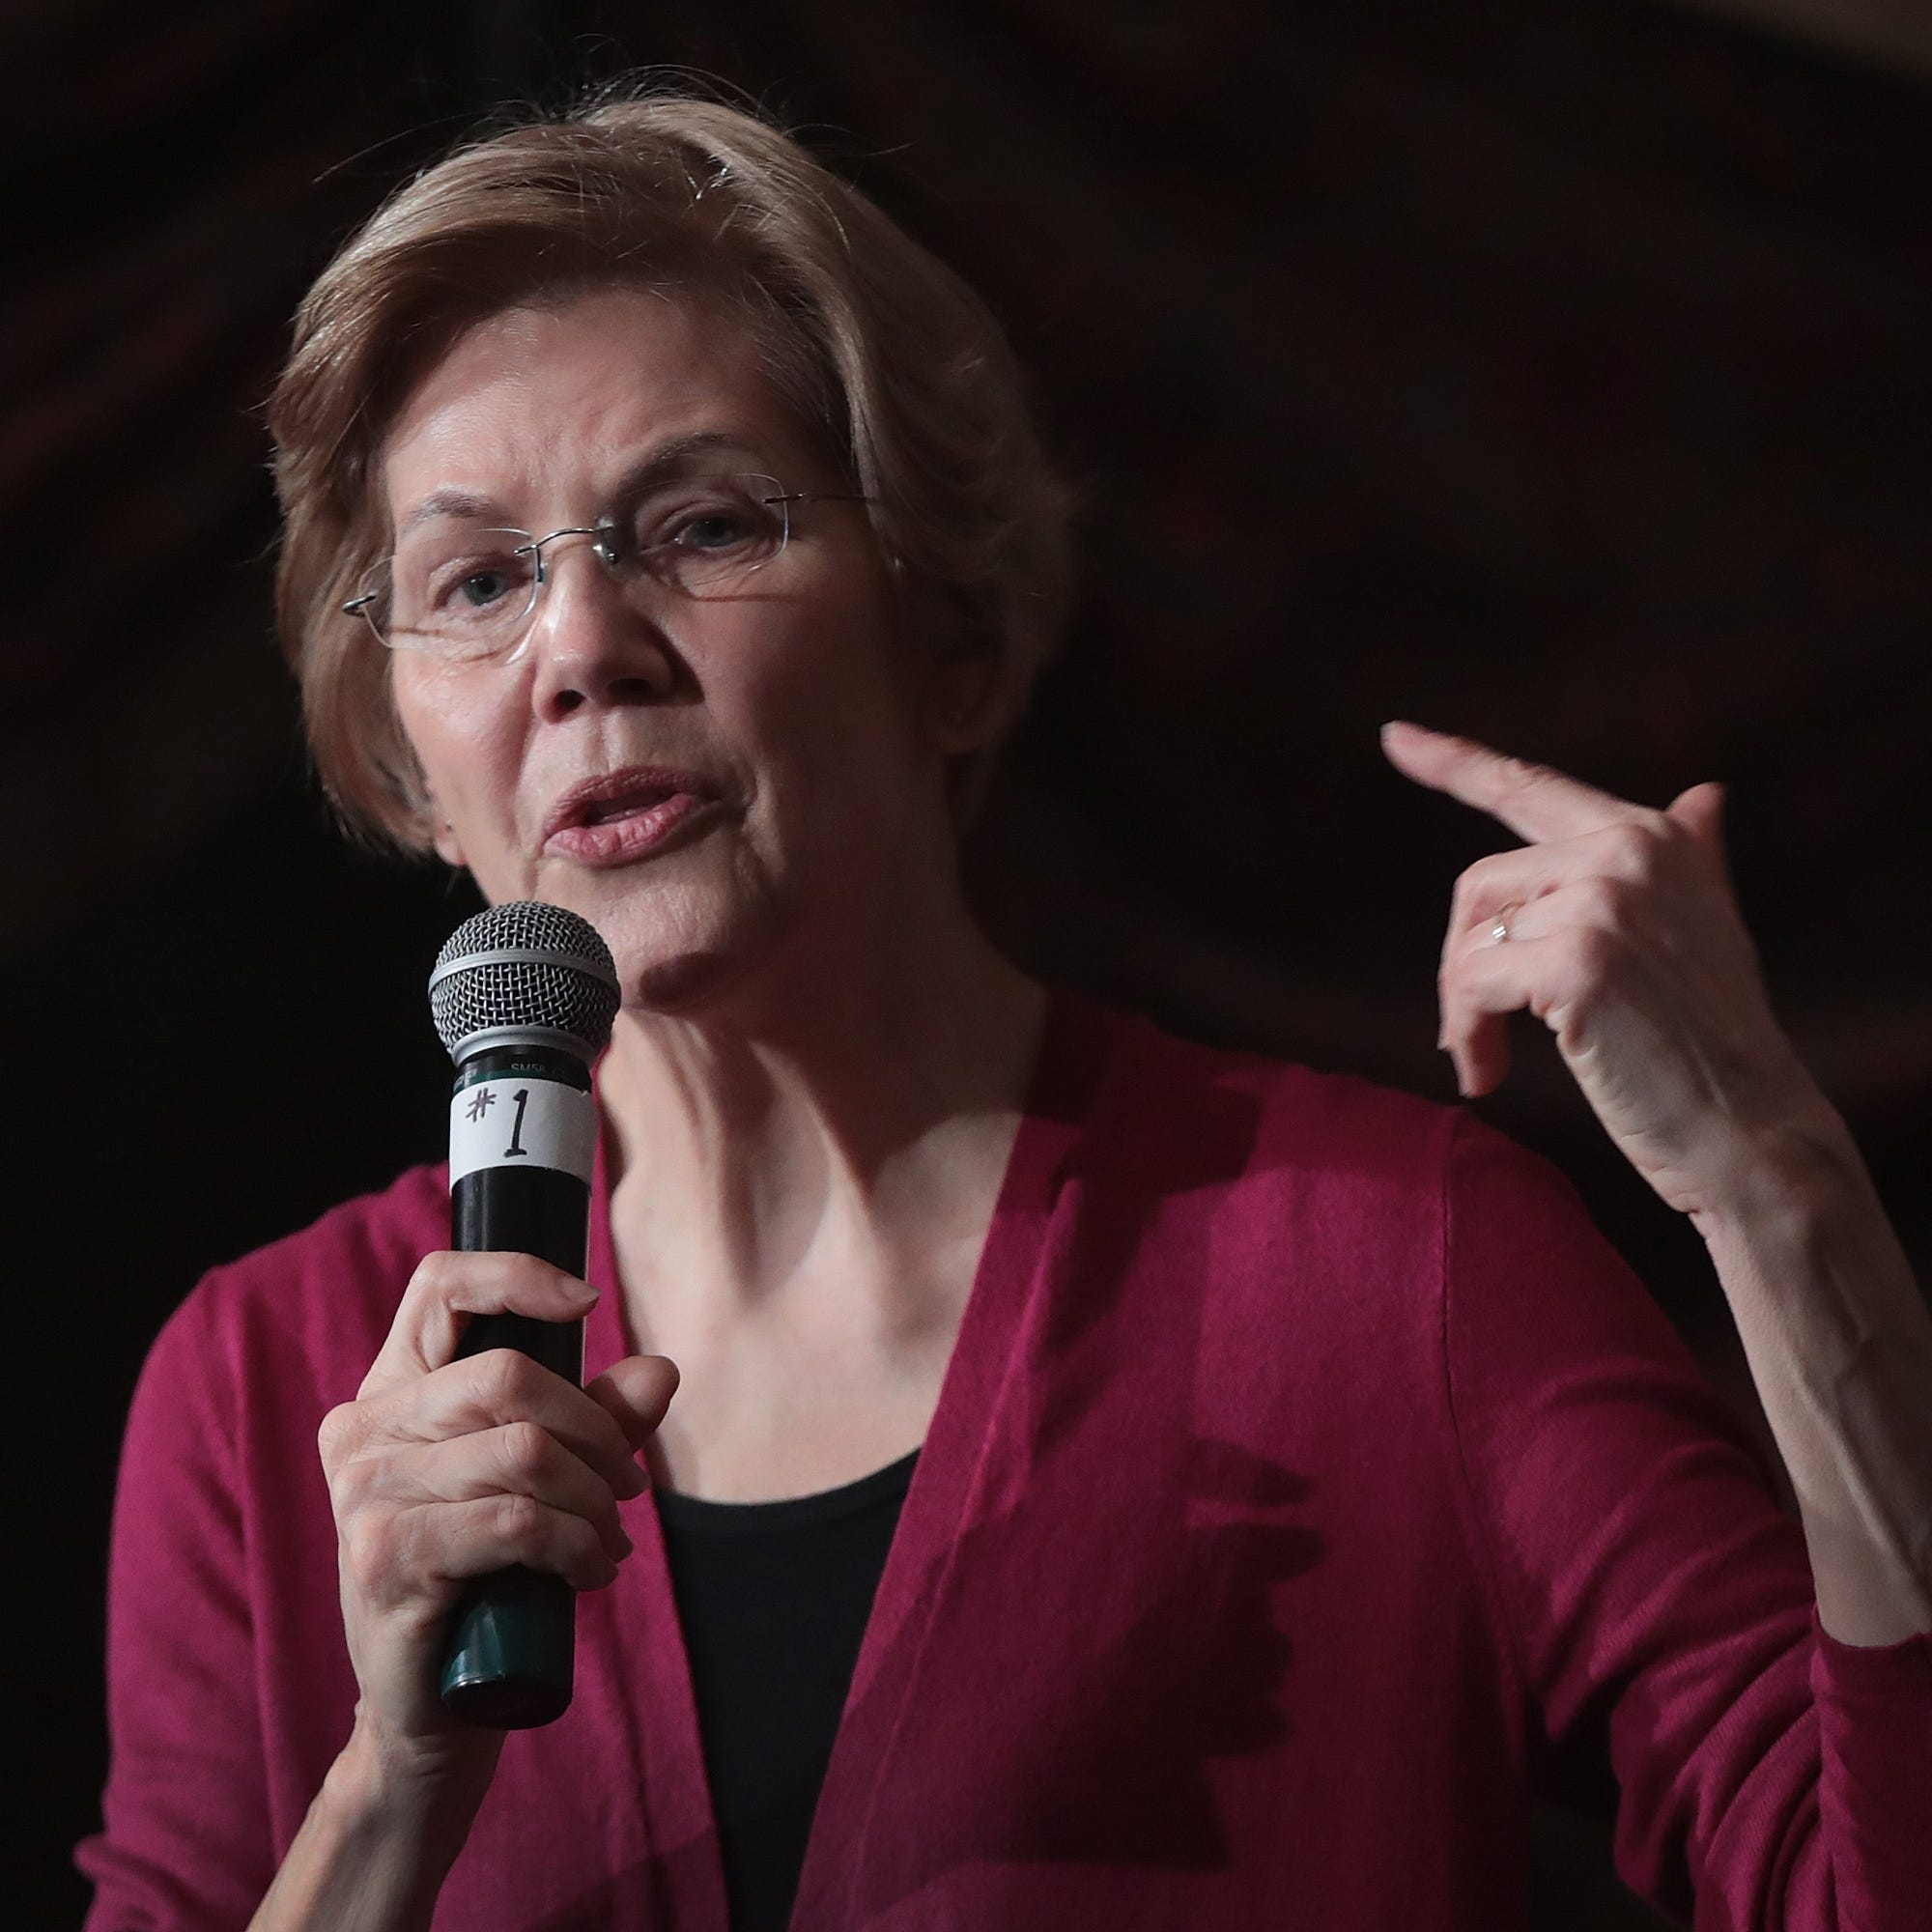 Sen. Elizabeth Warren (D-MA) speaks to guests during an organizing event at the Orpheum Theater on Jan. 5, 2019 in Sioux City, Iowa.